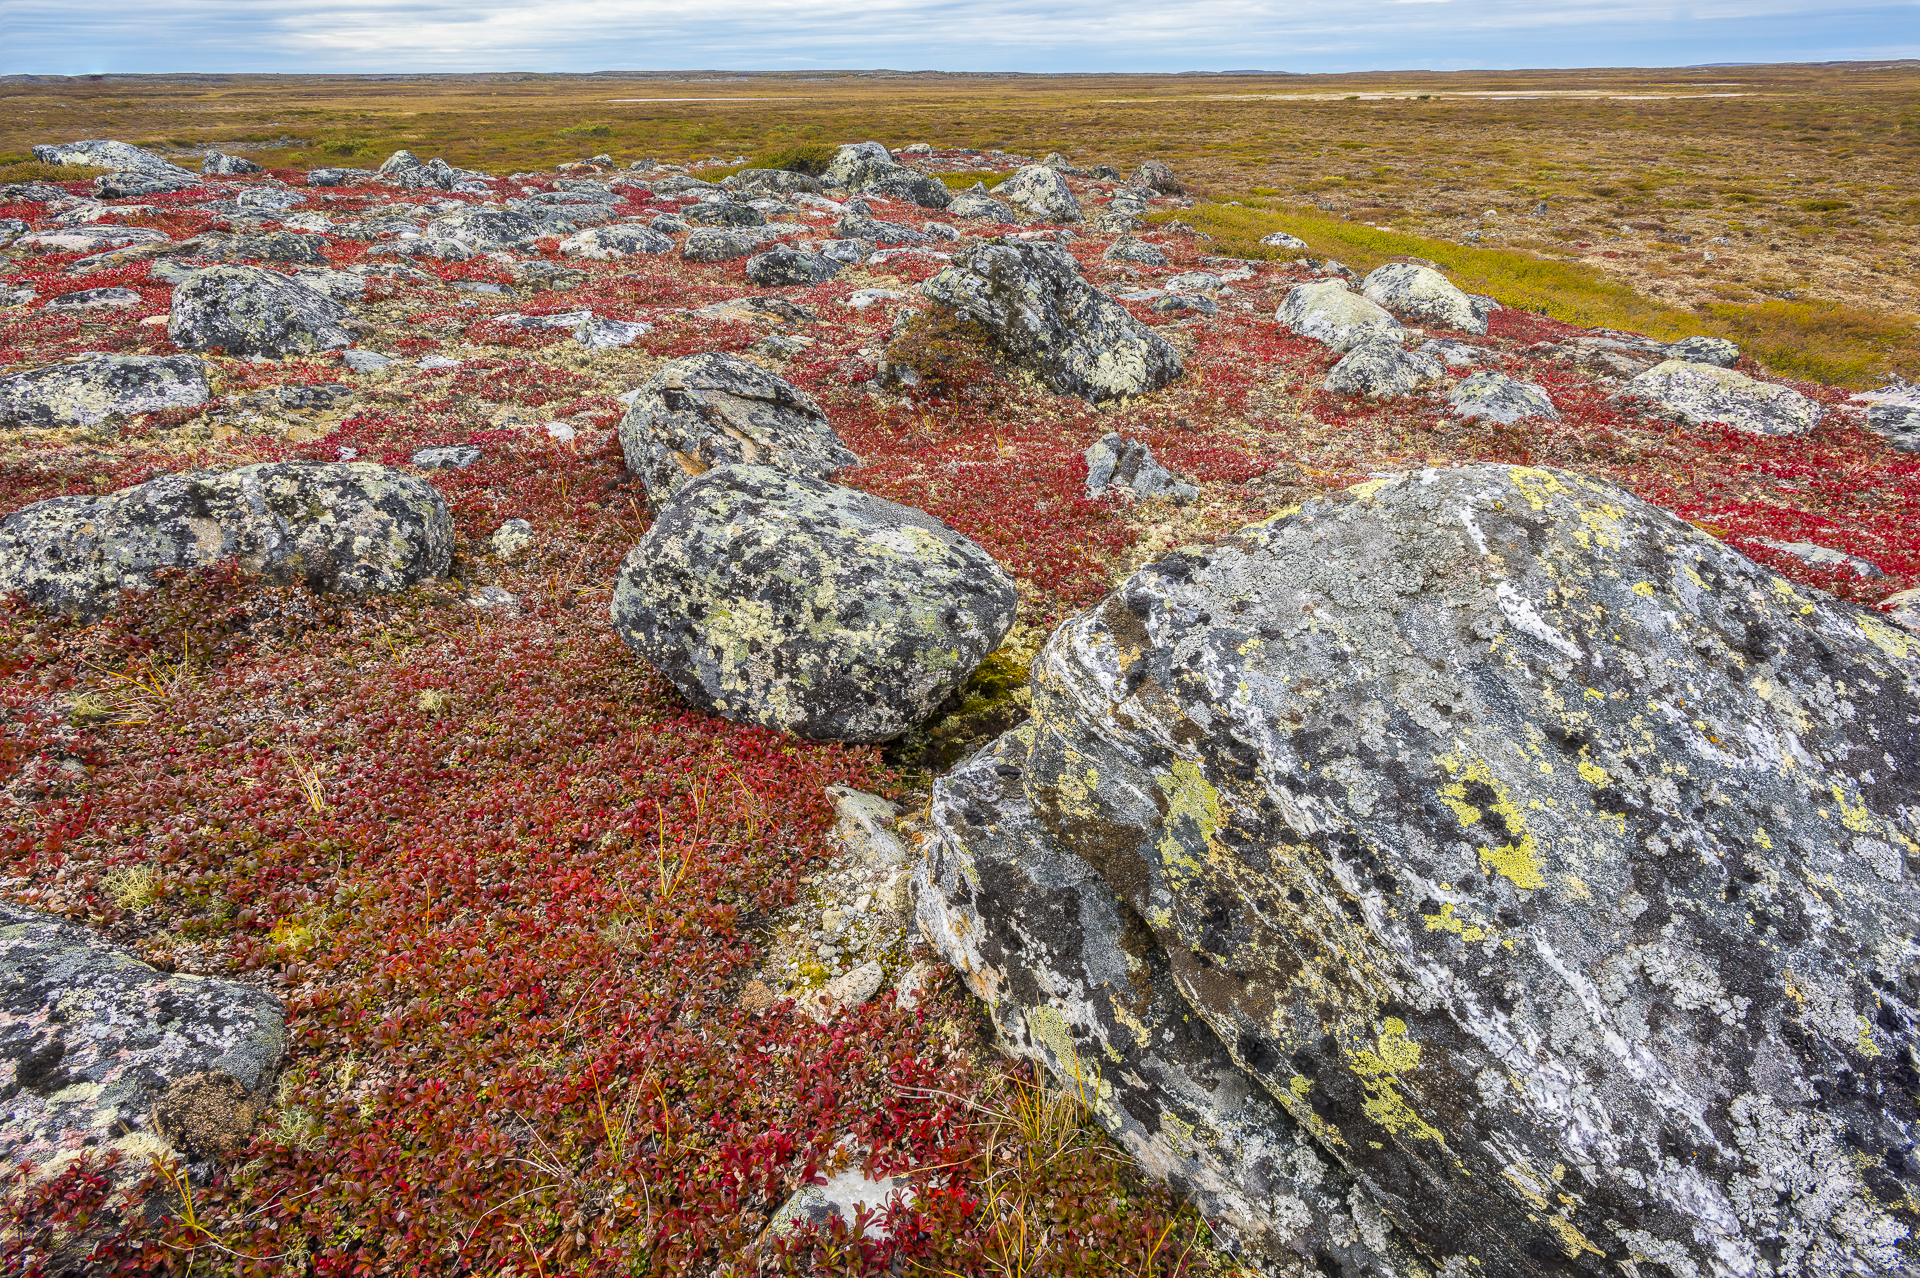 Arctic tundra in fall colors. Nunavik region, Canada.